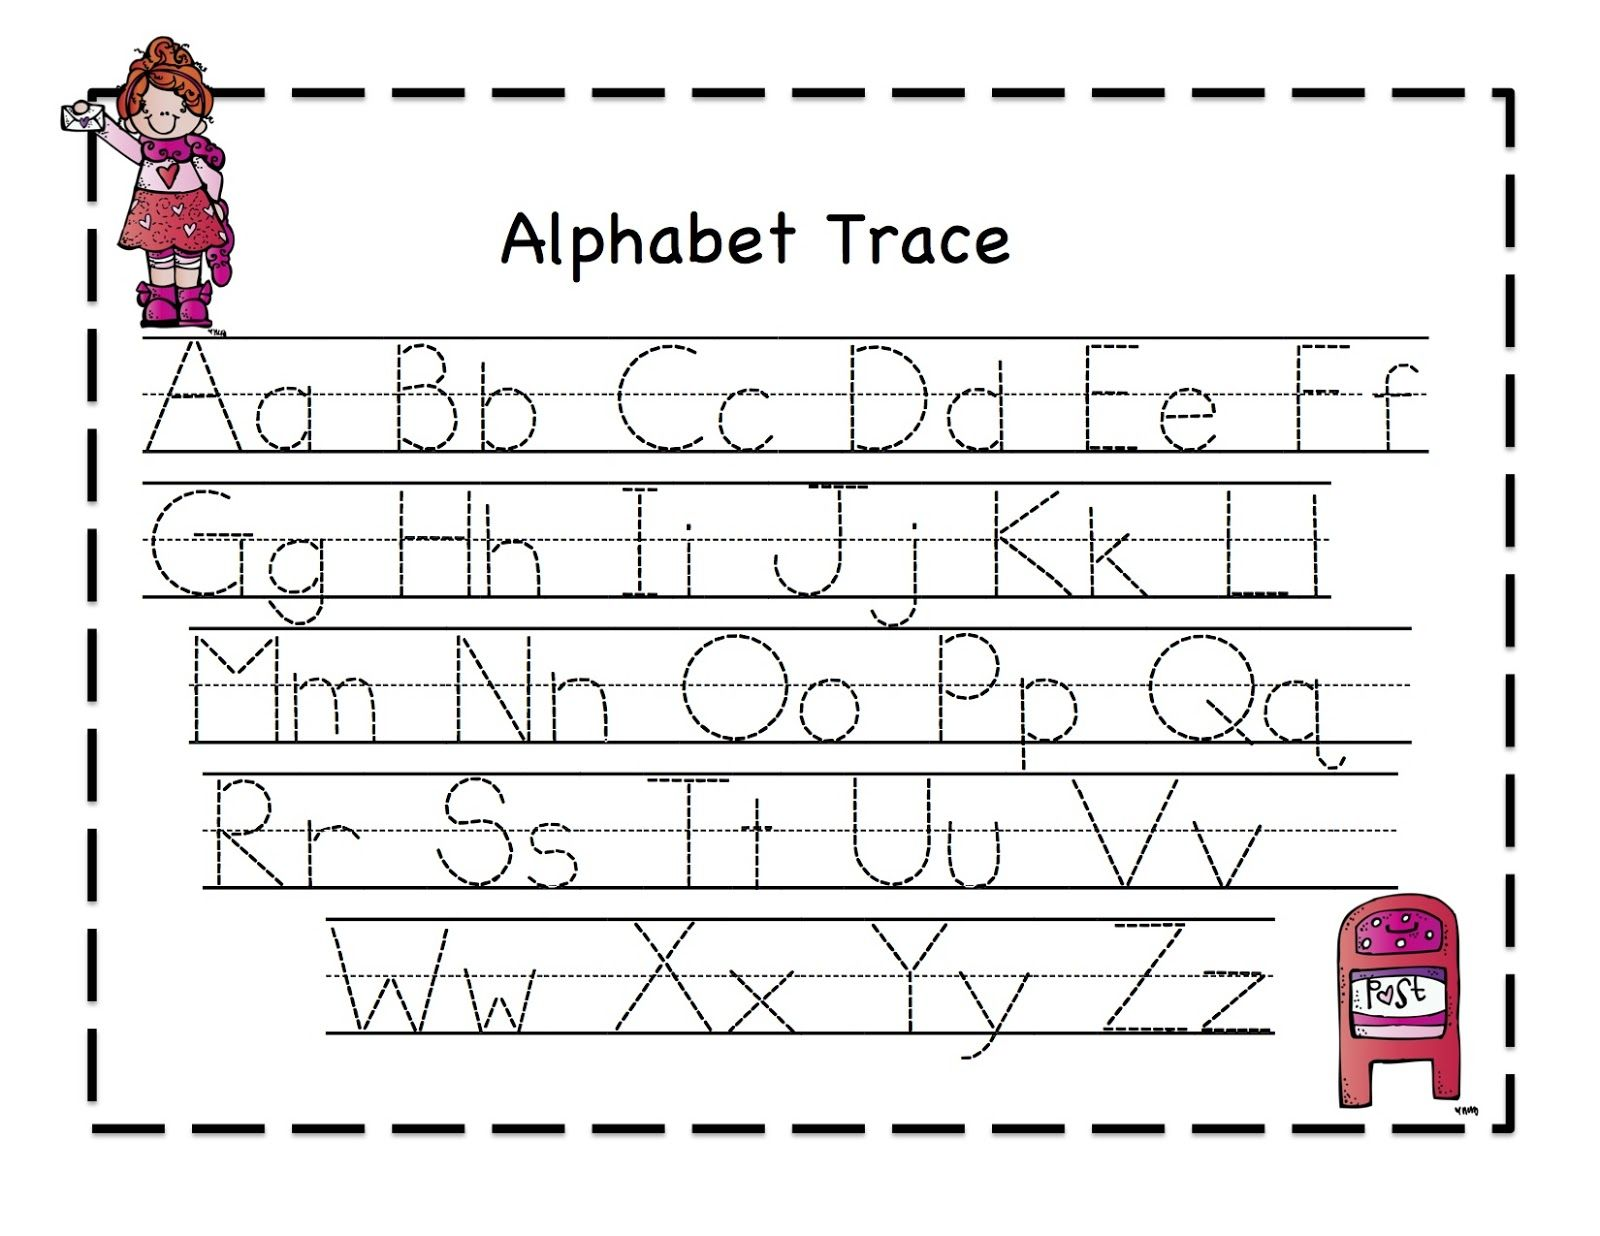 Worksheets Abc Tracing Worksheets abc tracing sheets for preschool kids kiddo shelter alphabet shelter